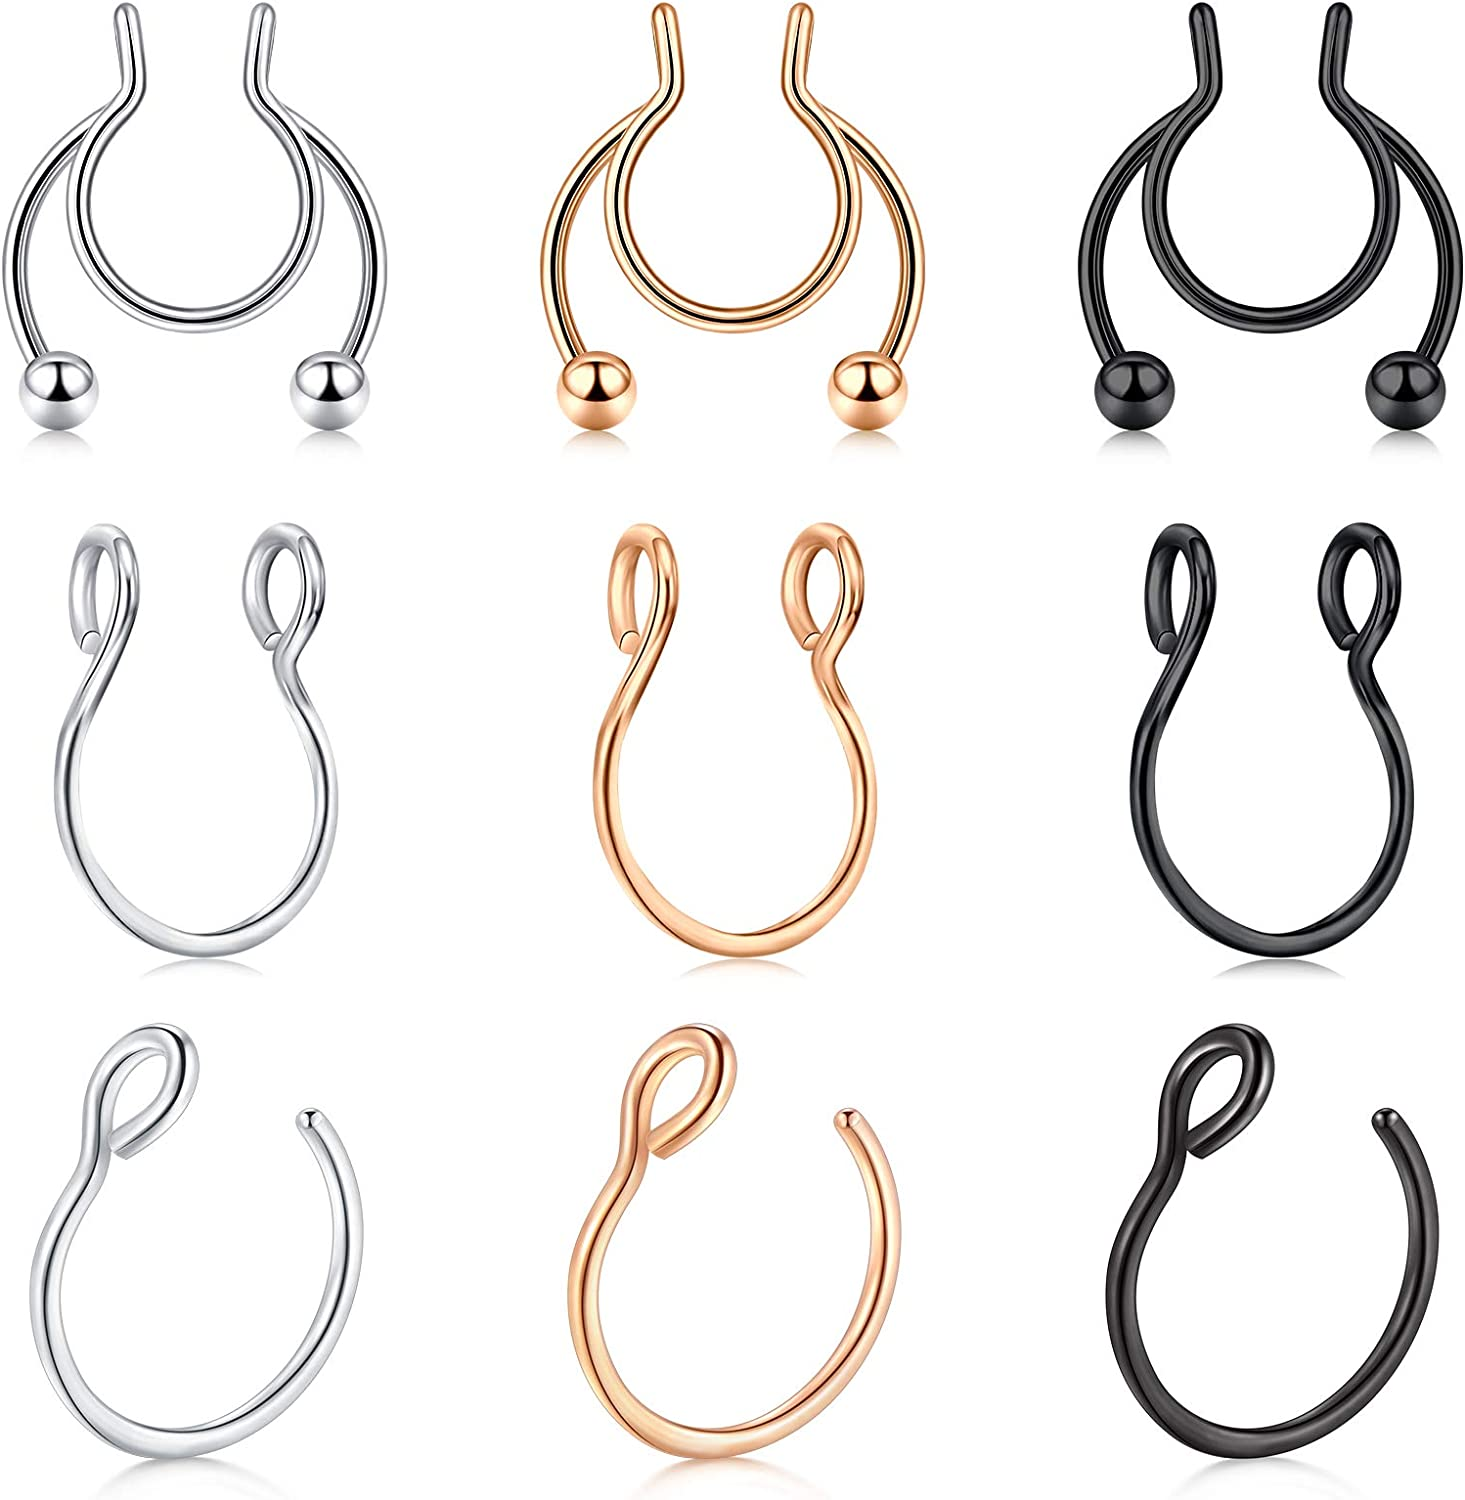 Price reduction MODRSA Fake Septum Rings Septu Jewelry Sales of SALE items from new works Faux Piercing